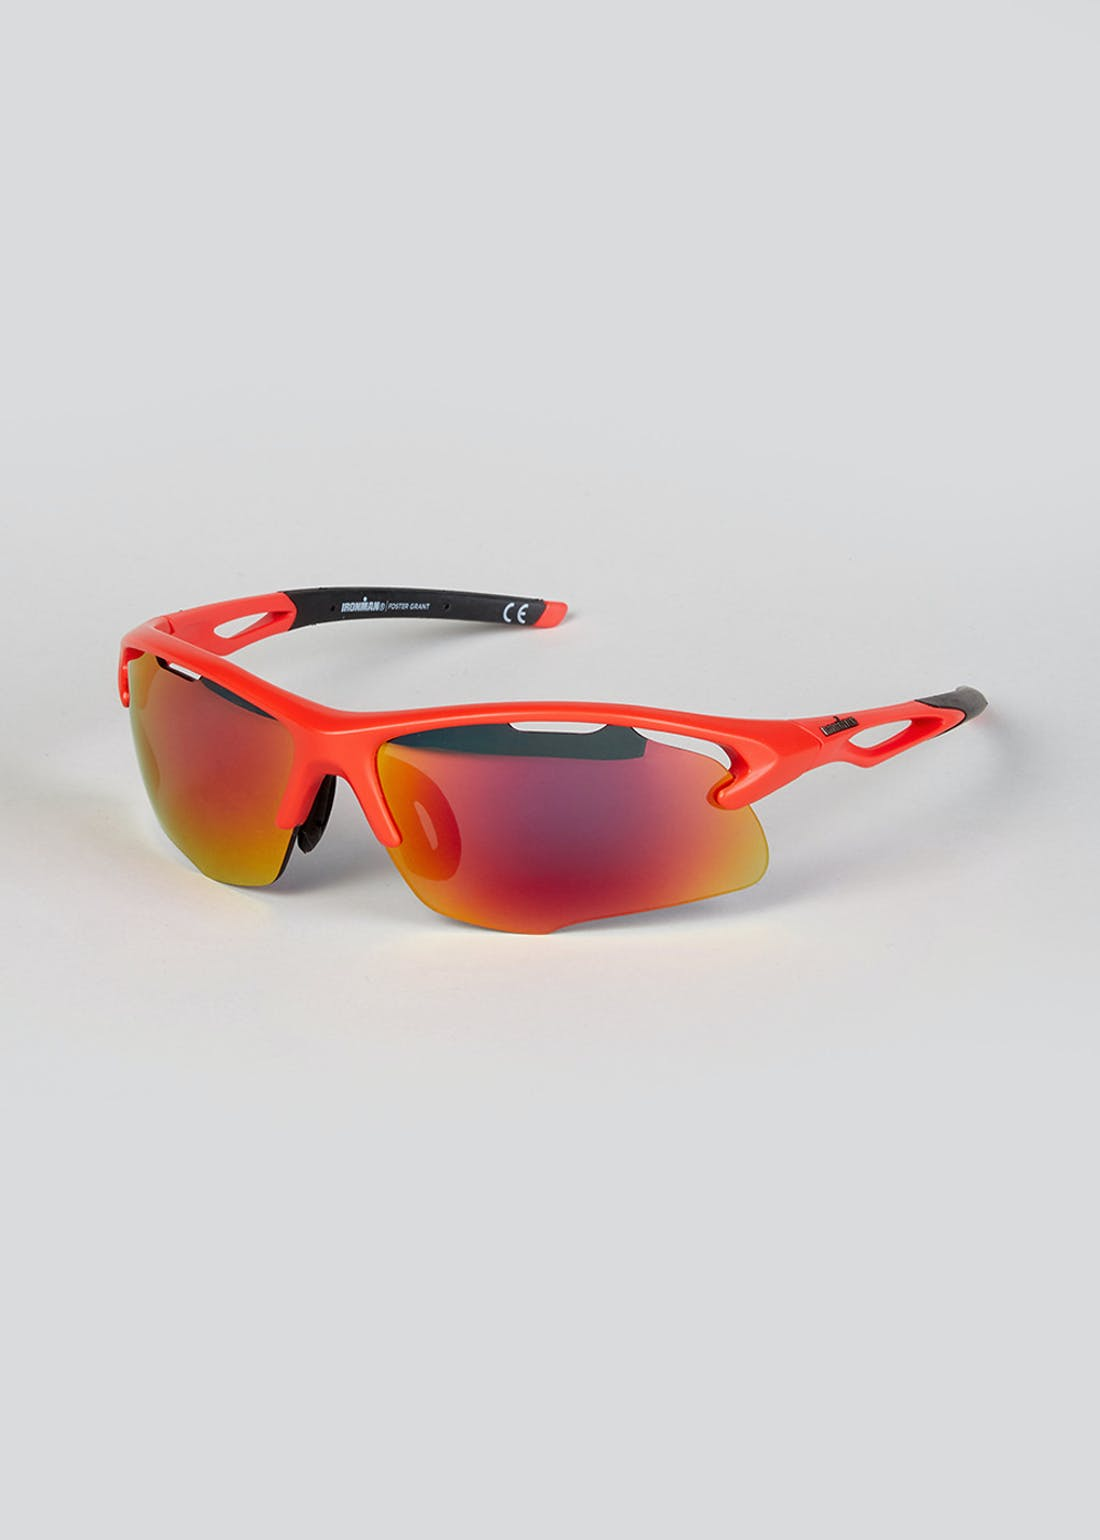 Foster Grant Ironman Sports Wrap Sunglasses